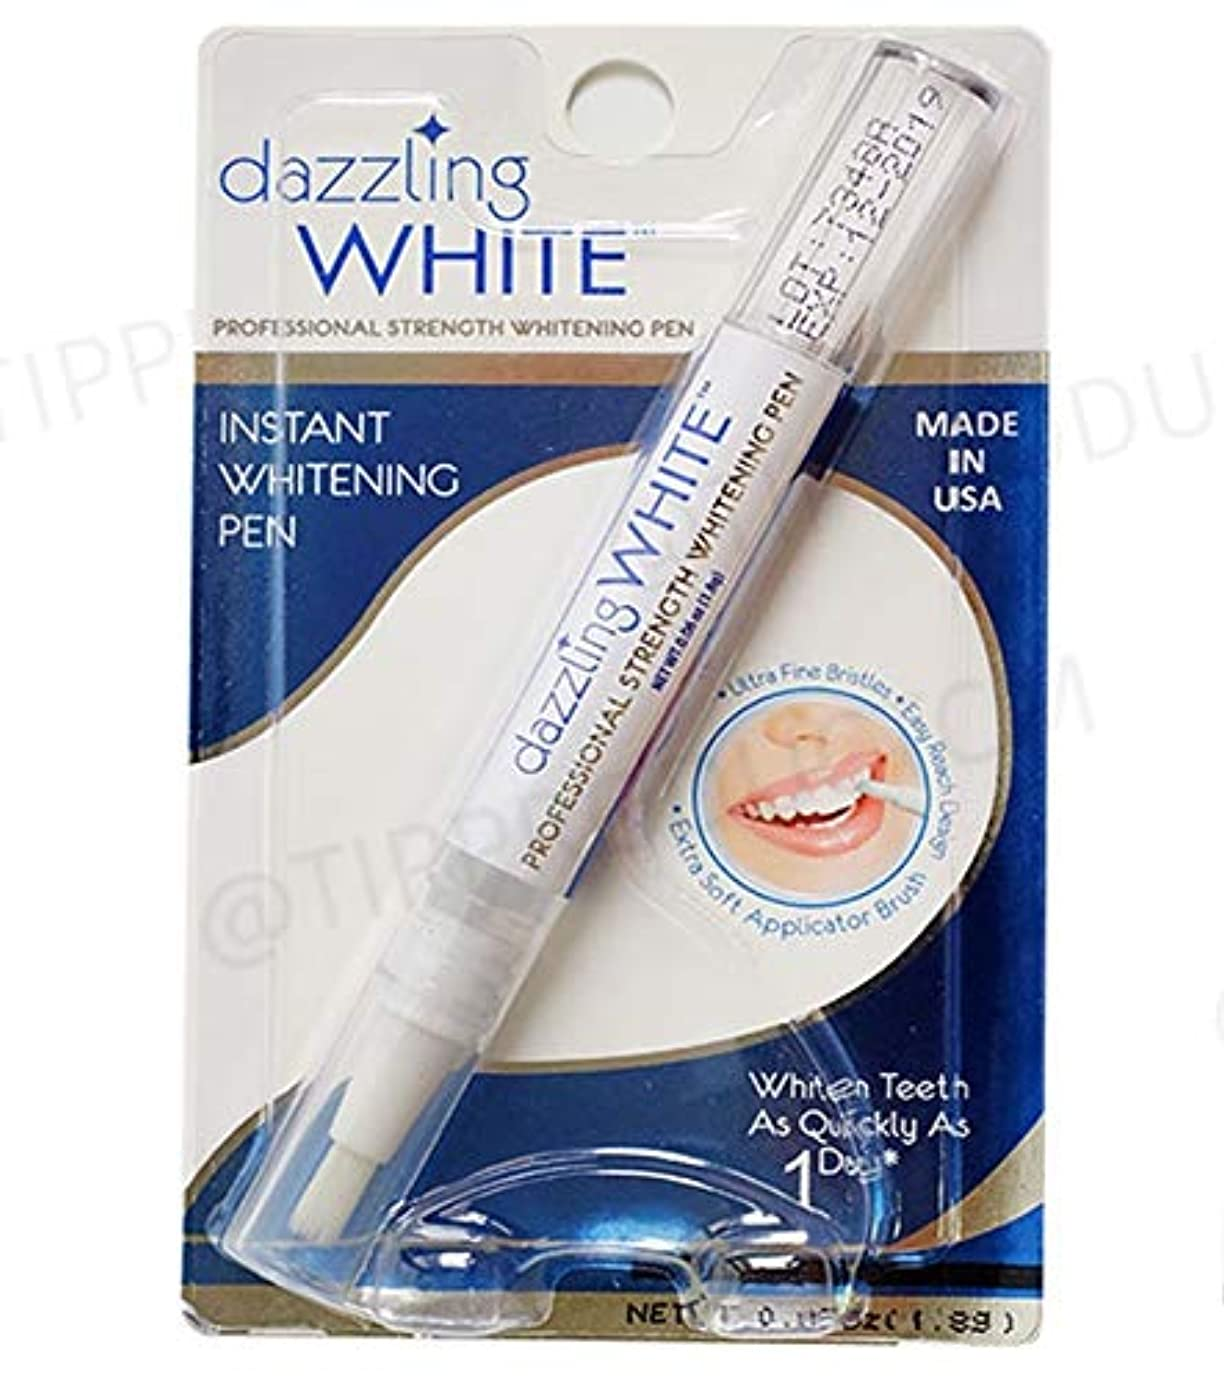 Teeth Whitening Rotary Peroxide Gel Tooth Cleaning Bleaching Kit Dental Dazzling White Teeth Whitening Pen Blanqueador...